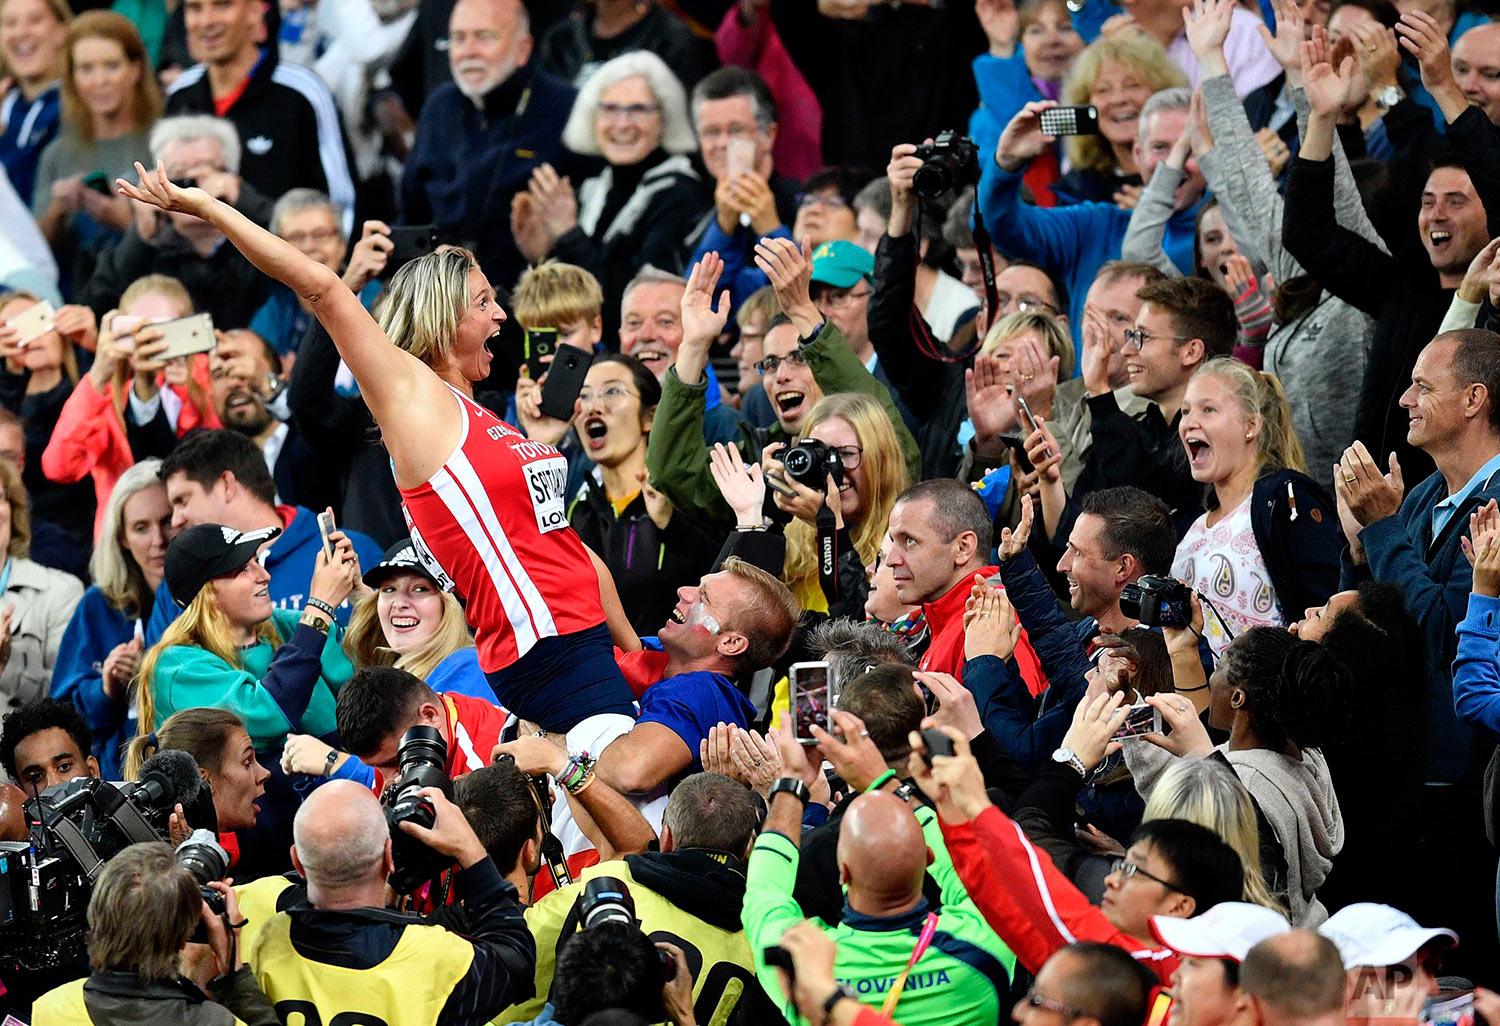 Czech Republic's Barbora Spotakova celebrates after winning the Woman's javelin at the World Athletics Championships in London Tuesday, Aug. 8, 2017. (AP Photo/Martin Meissner)